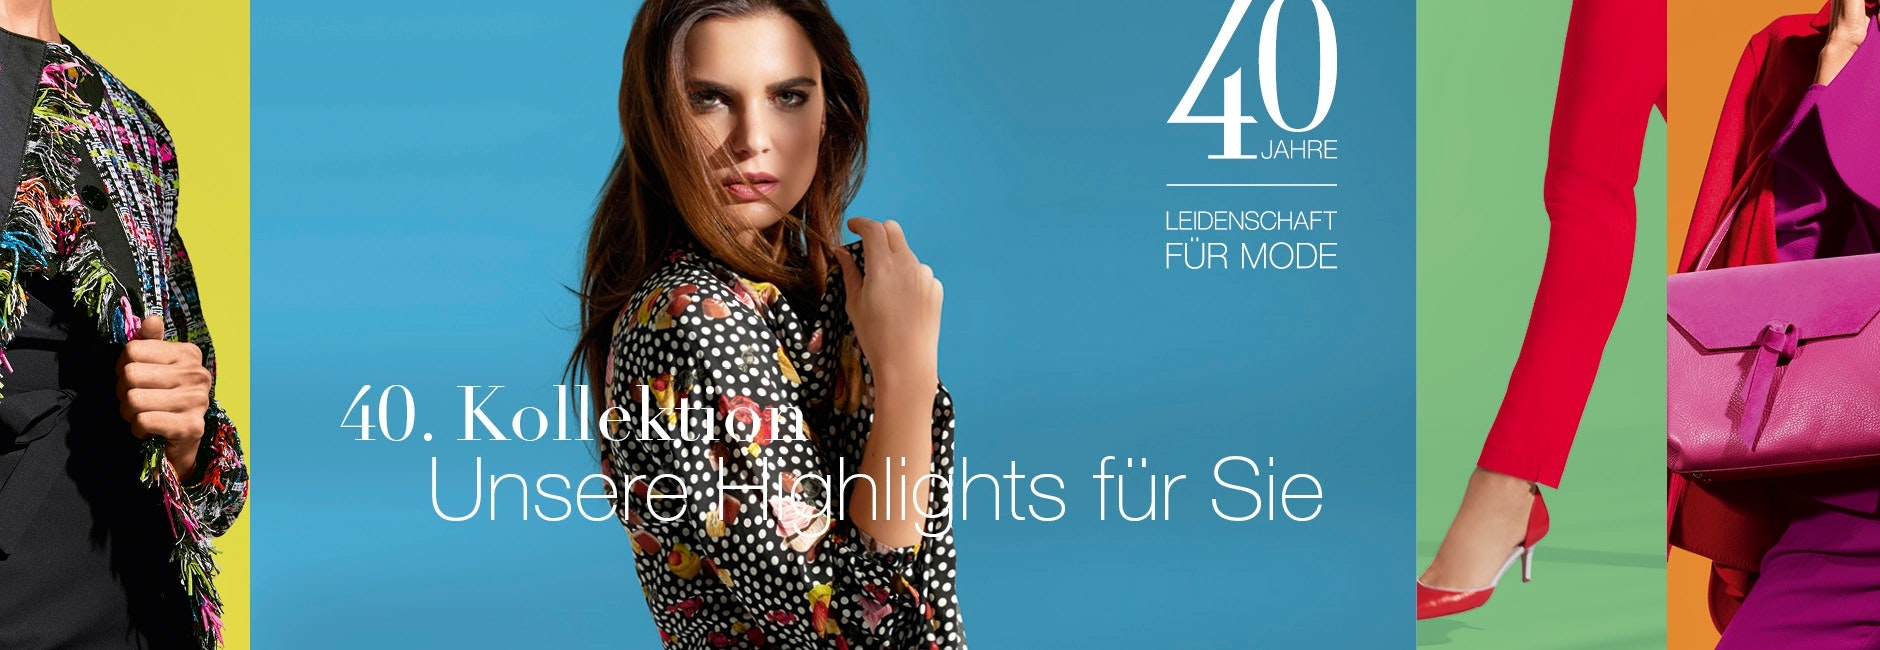 40. Kollektion - Unsere Highlights!